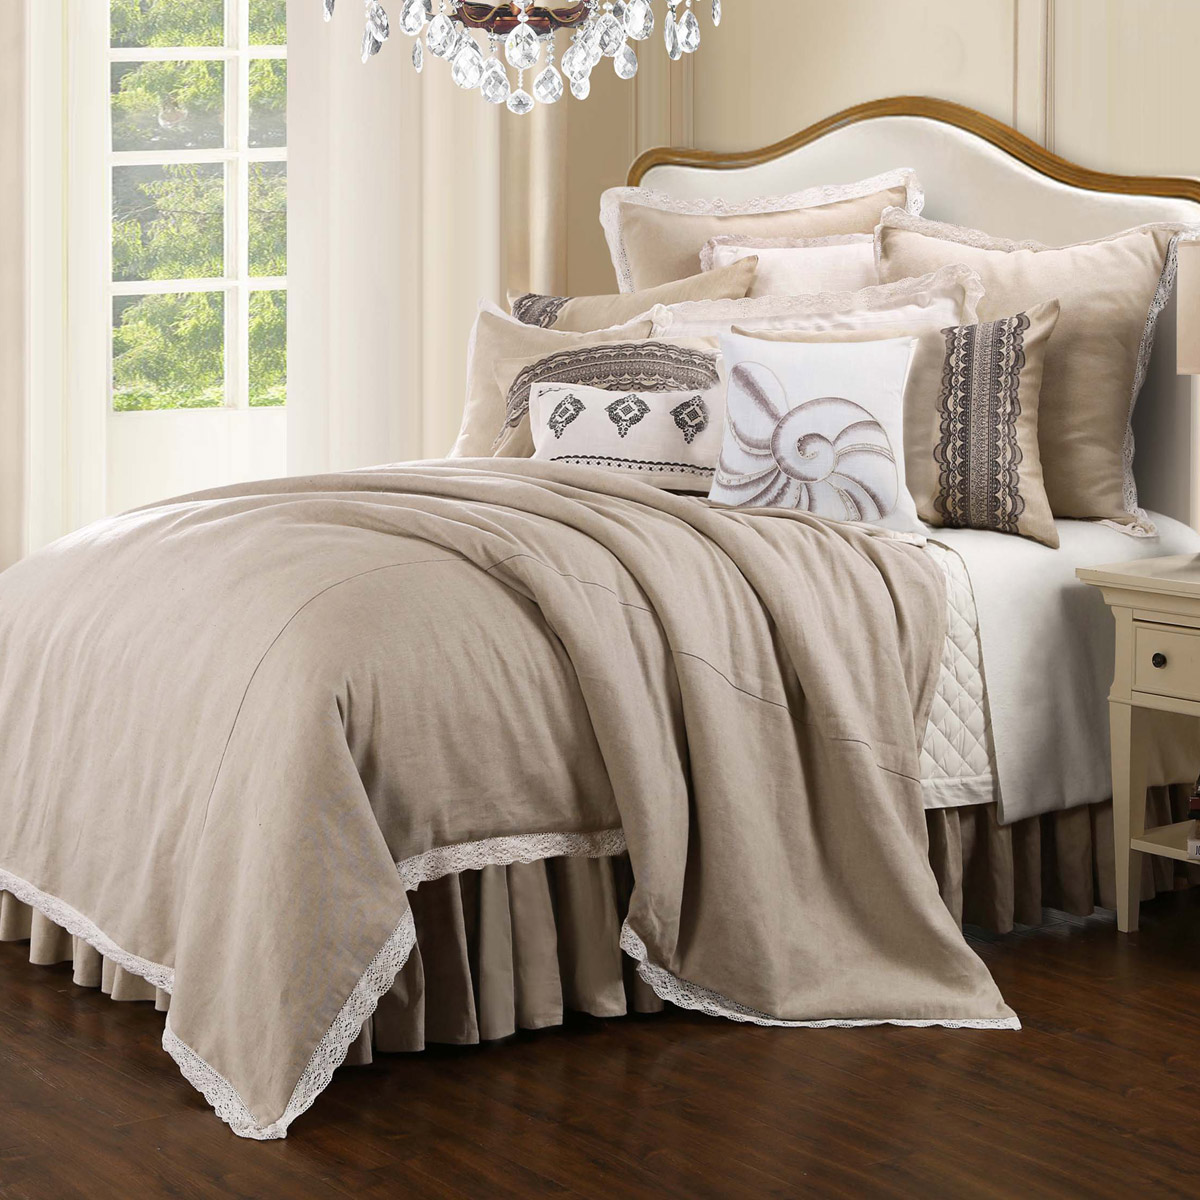 Image of: Use Burlap Bed Skirt